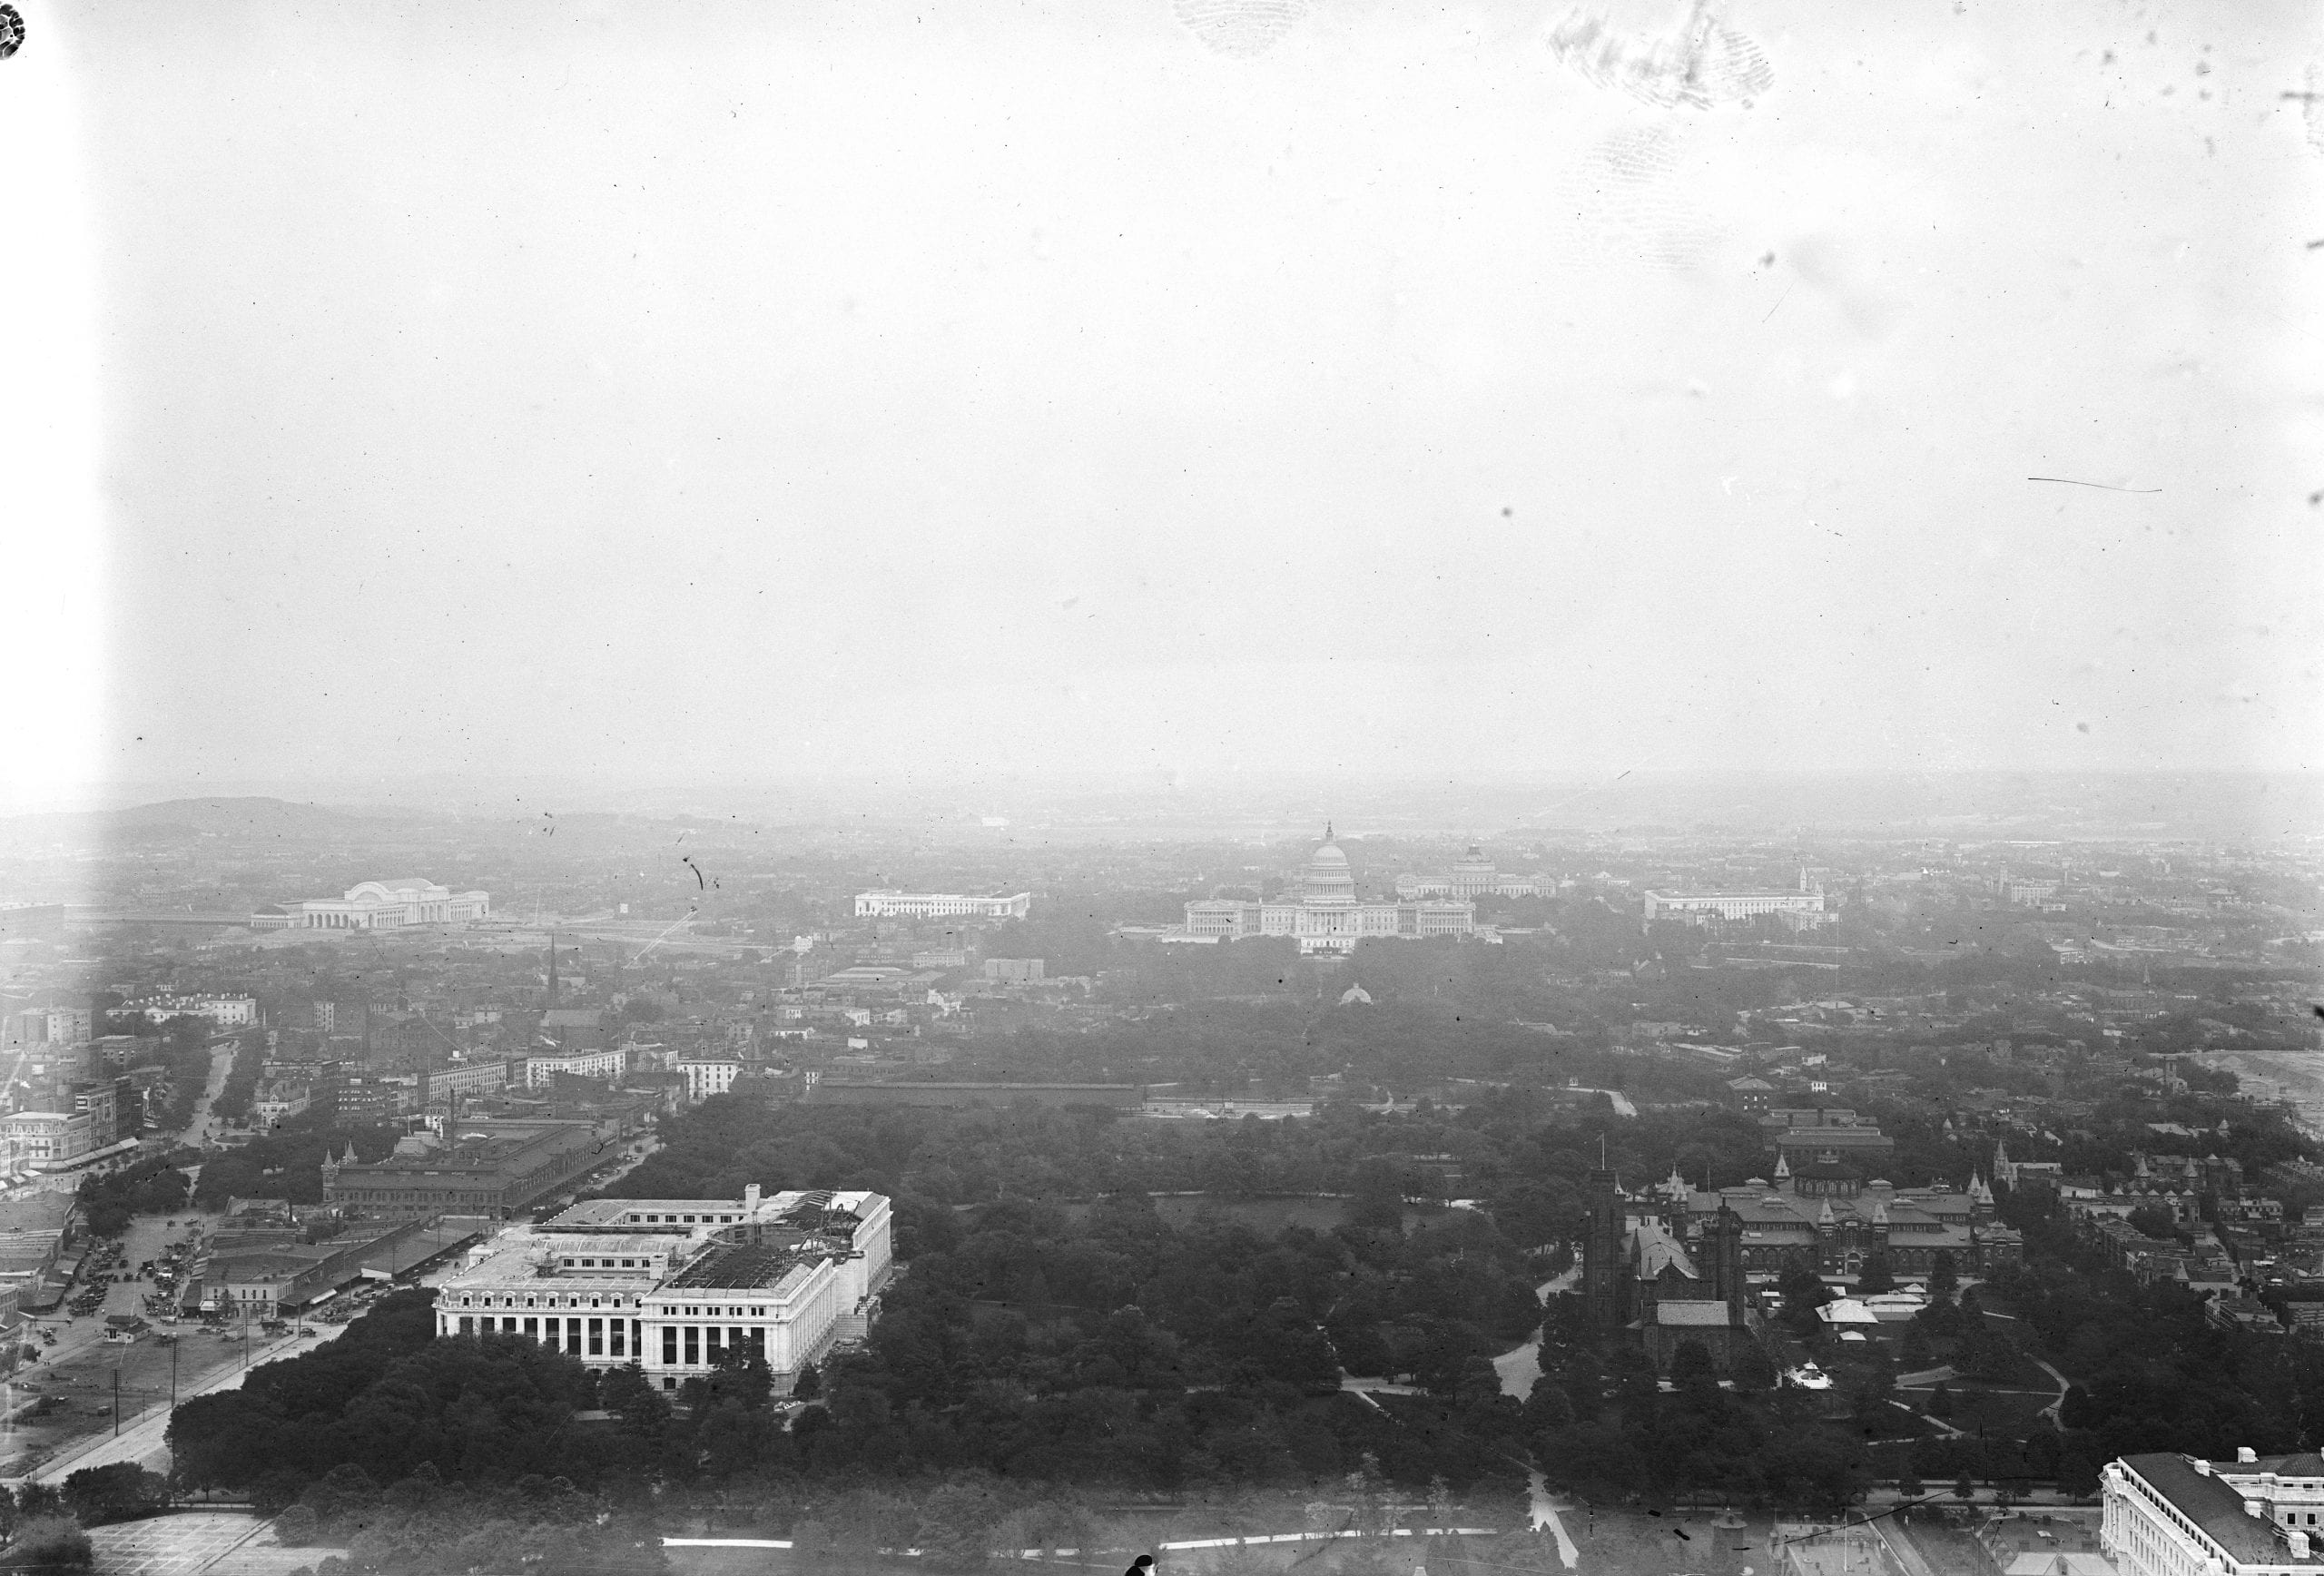 Capitol Bldg., seen from atop Washington Monument, Washington, D.C.